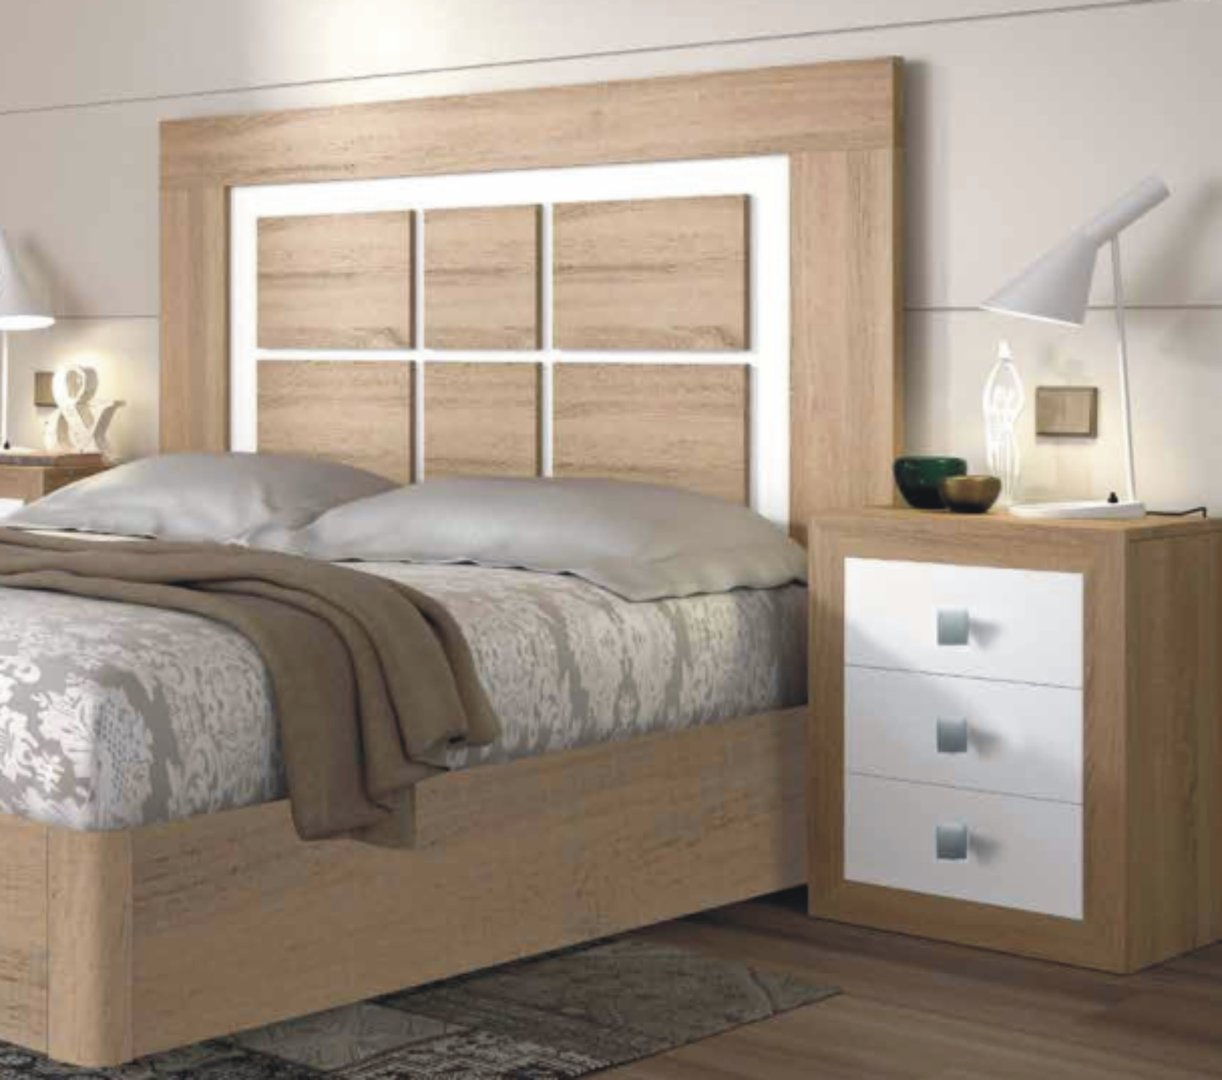 Suiza Range Moscu Headboard Cambrian & White